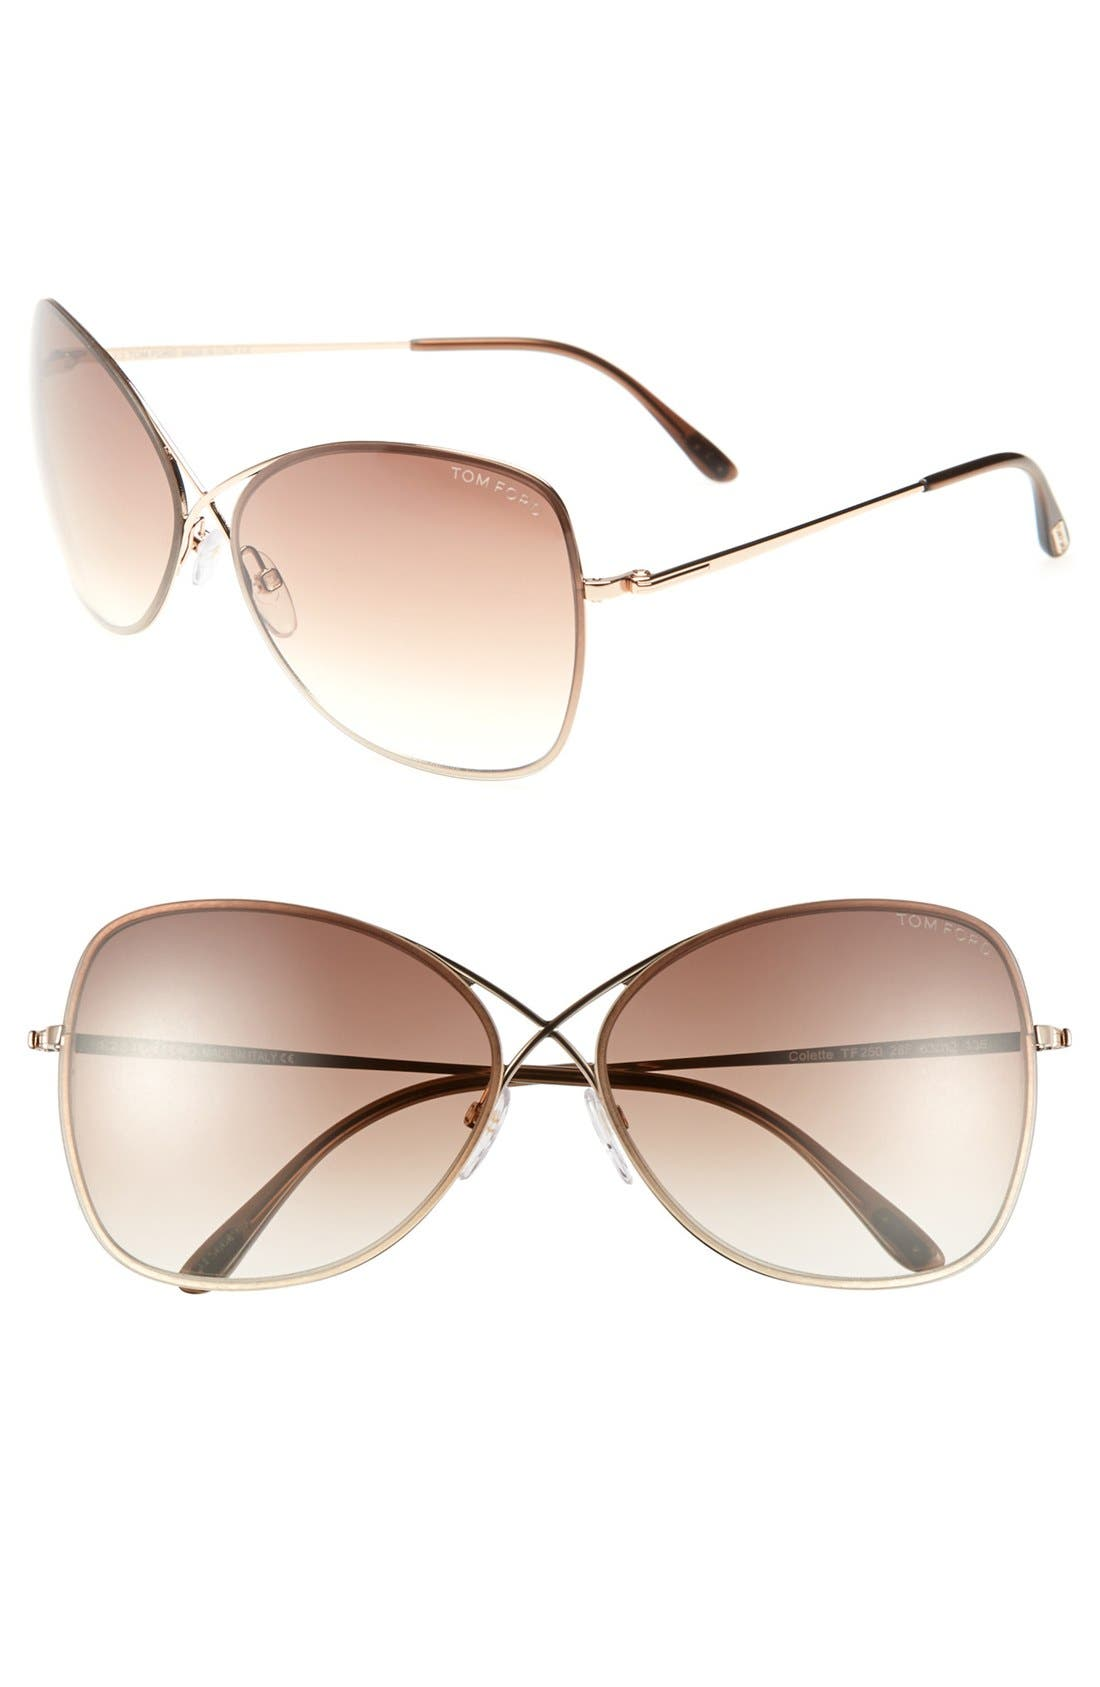 'Colette' 63mm Oversize Sunglasses,                             Main thumbnail 1, color,